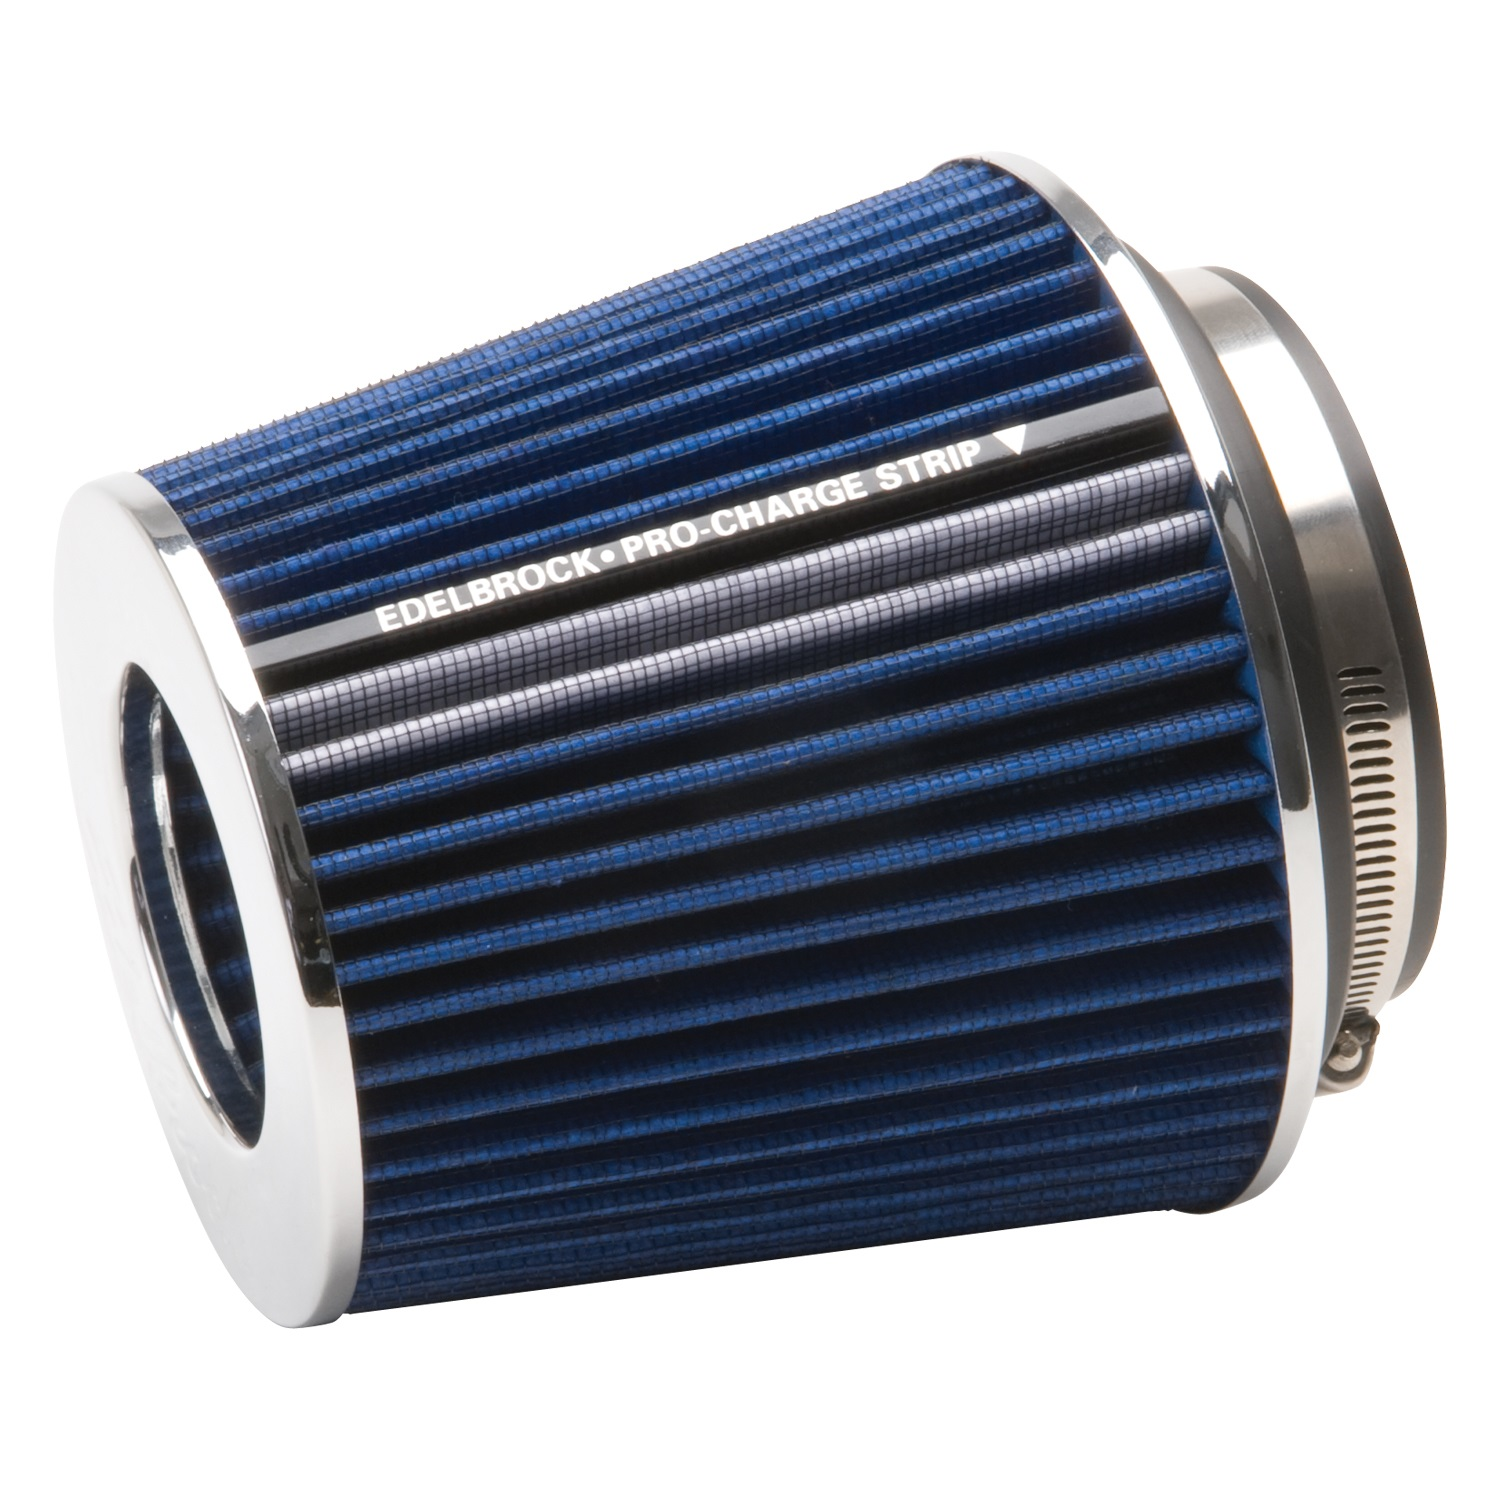 Fast Air Cleaners : New edelbrock air cleaner element filter us seller fast